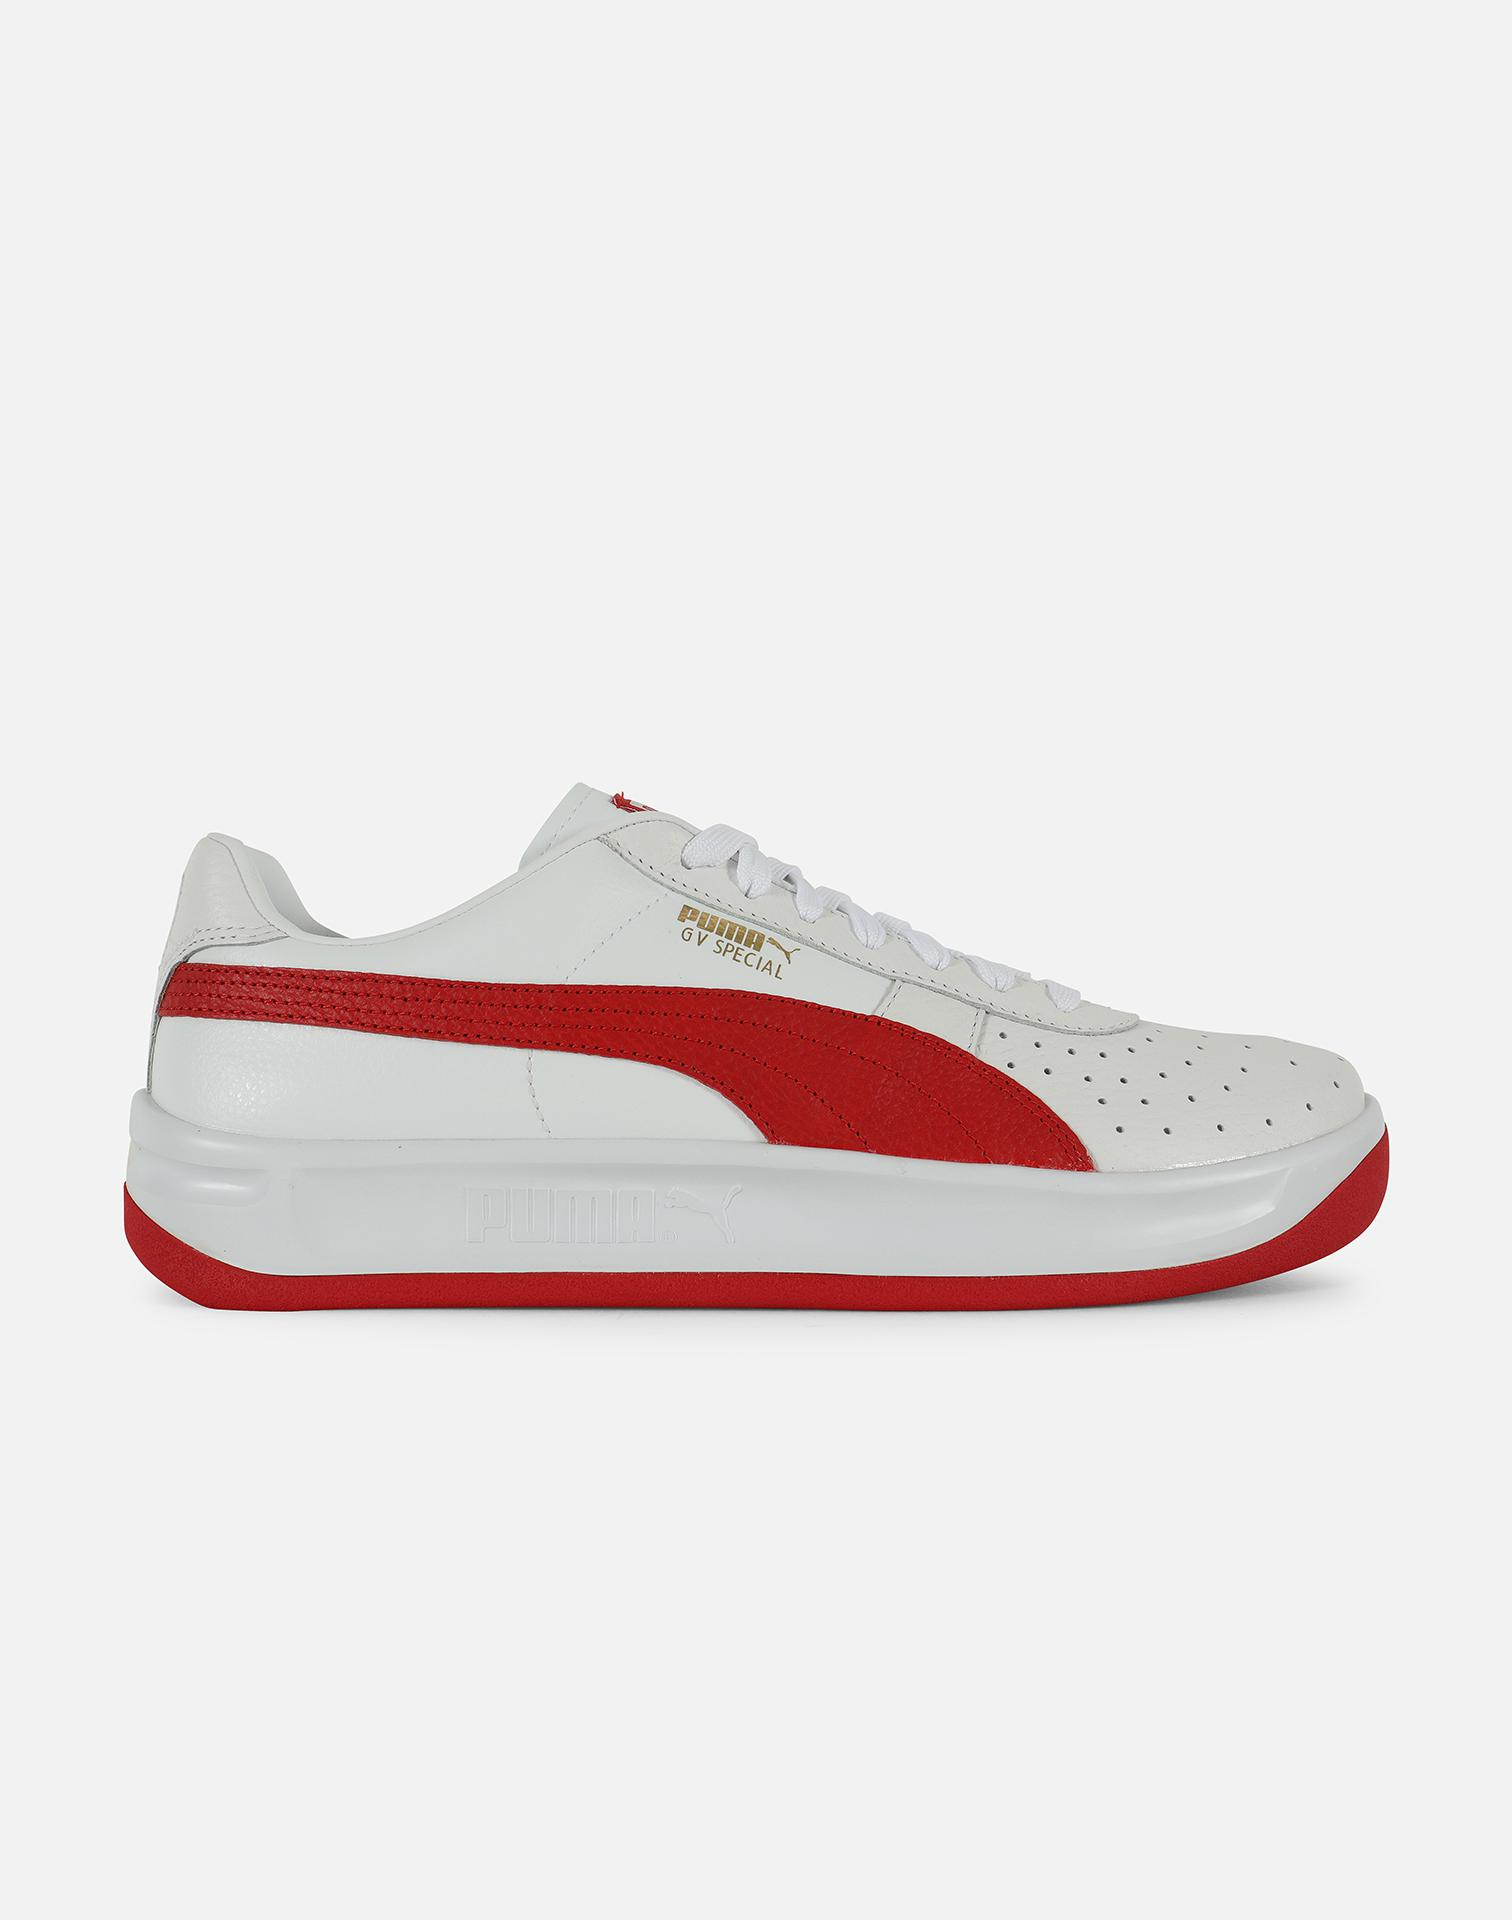 268d842d4c2 Lyst - Puma Gv Special+ in White for Men